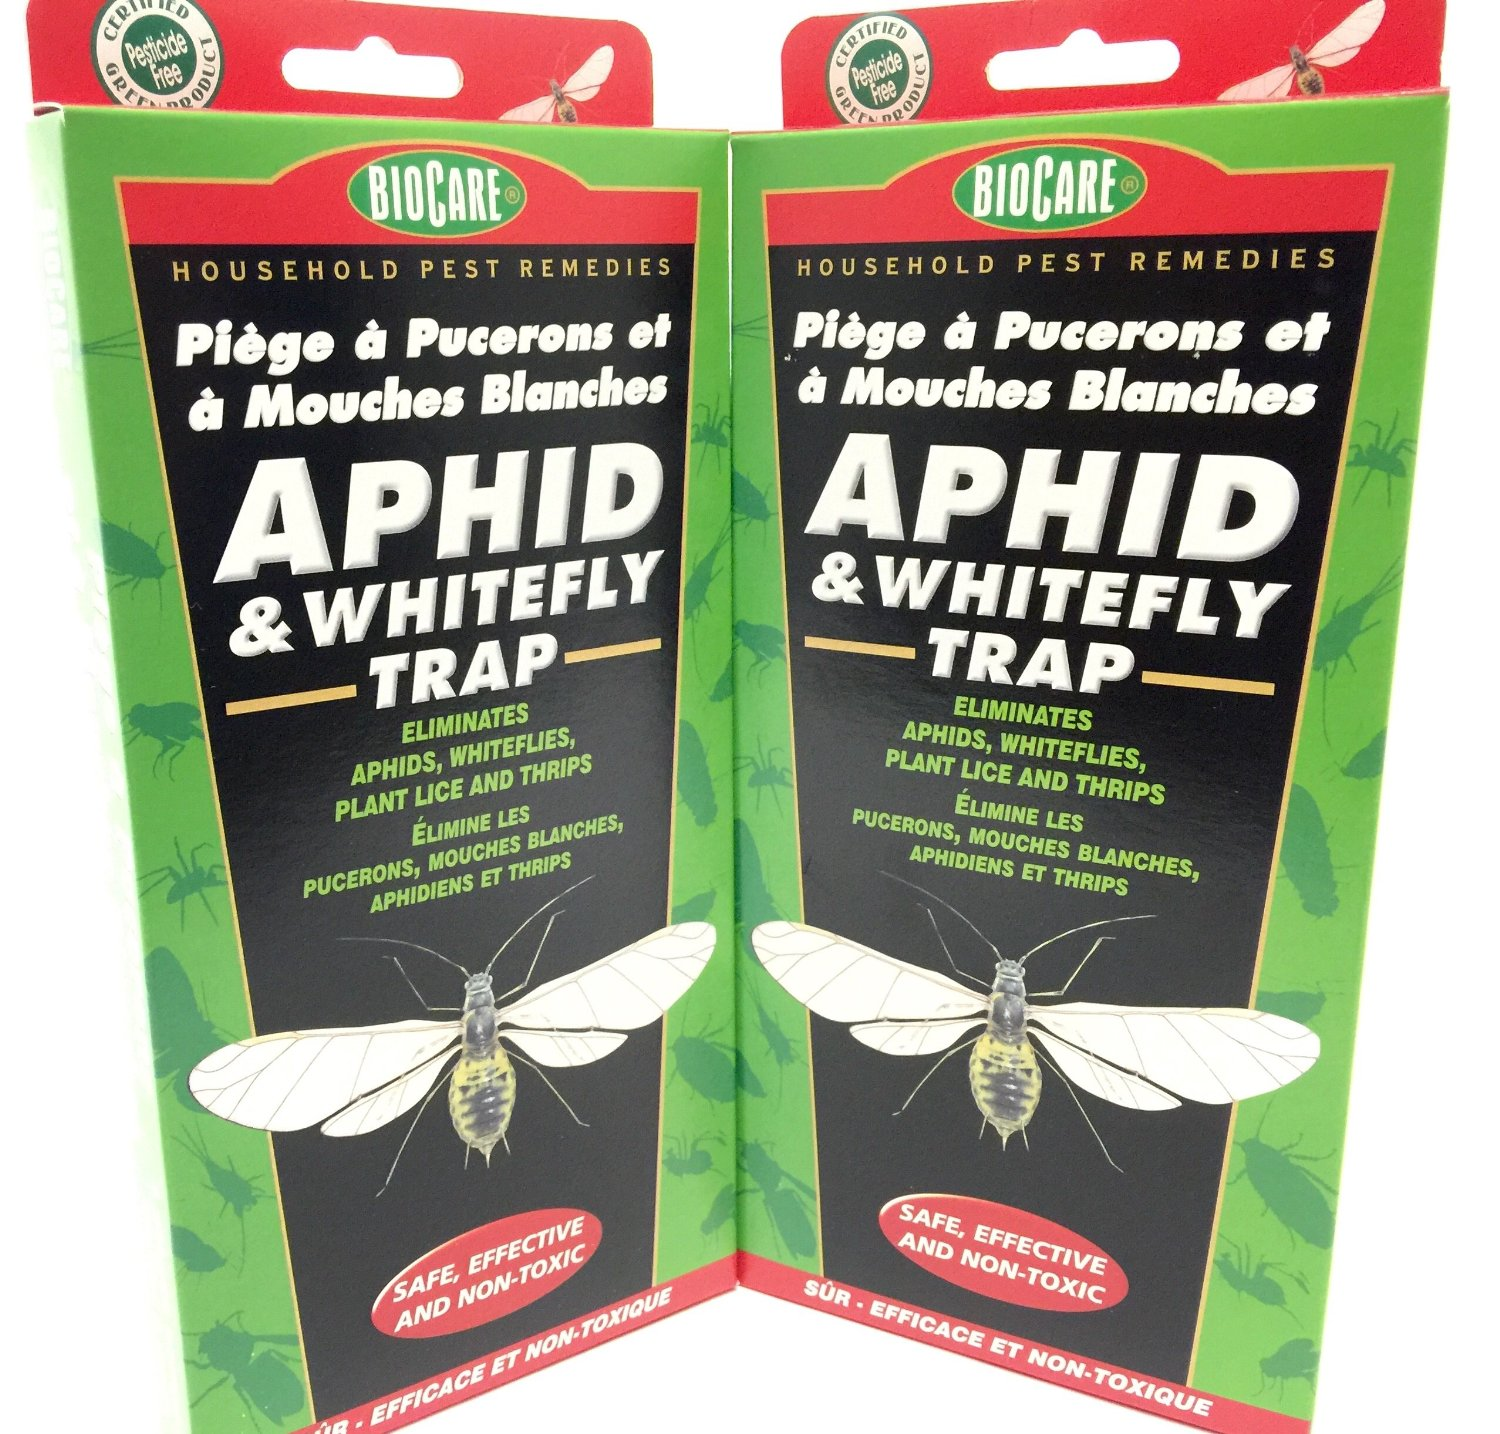 2 Pack - BioCare Household Pest Remedies APHID & WHITEFLY TRAP - Safe, Effective and Non-toxic